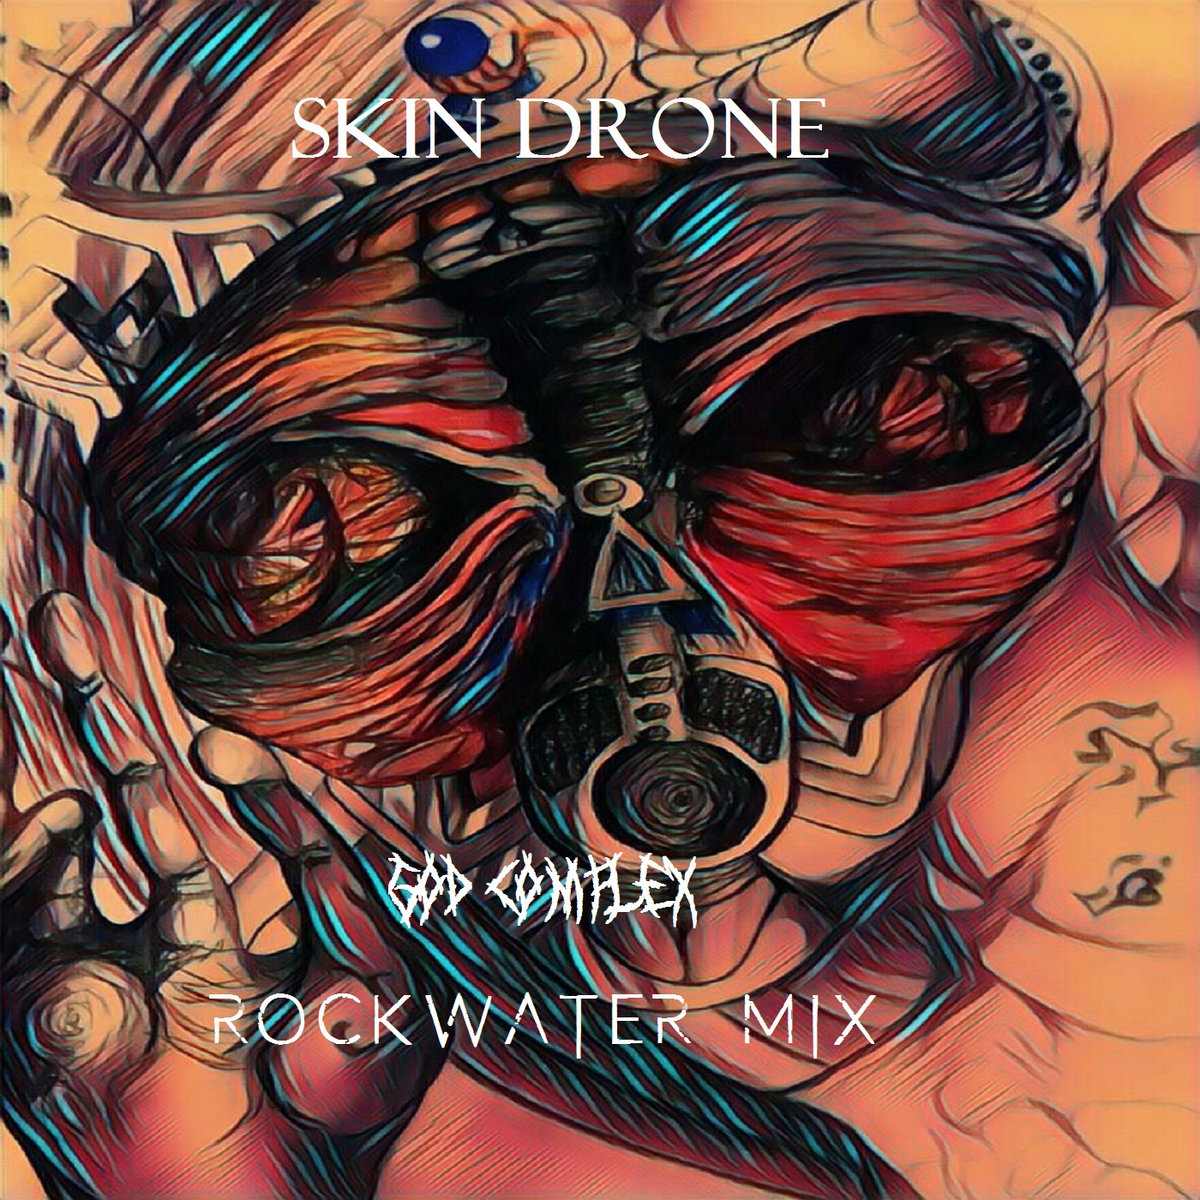 God Complex (Rockwater Mix) by Skin Drone